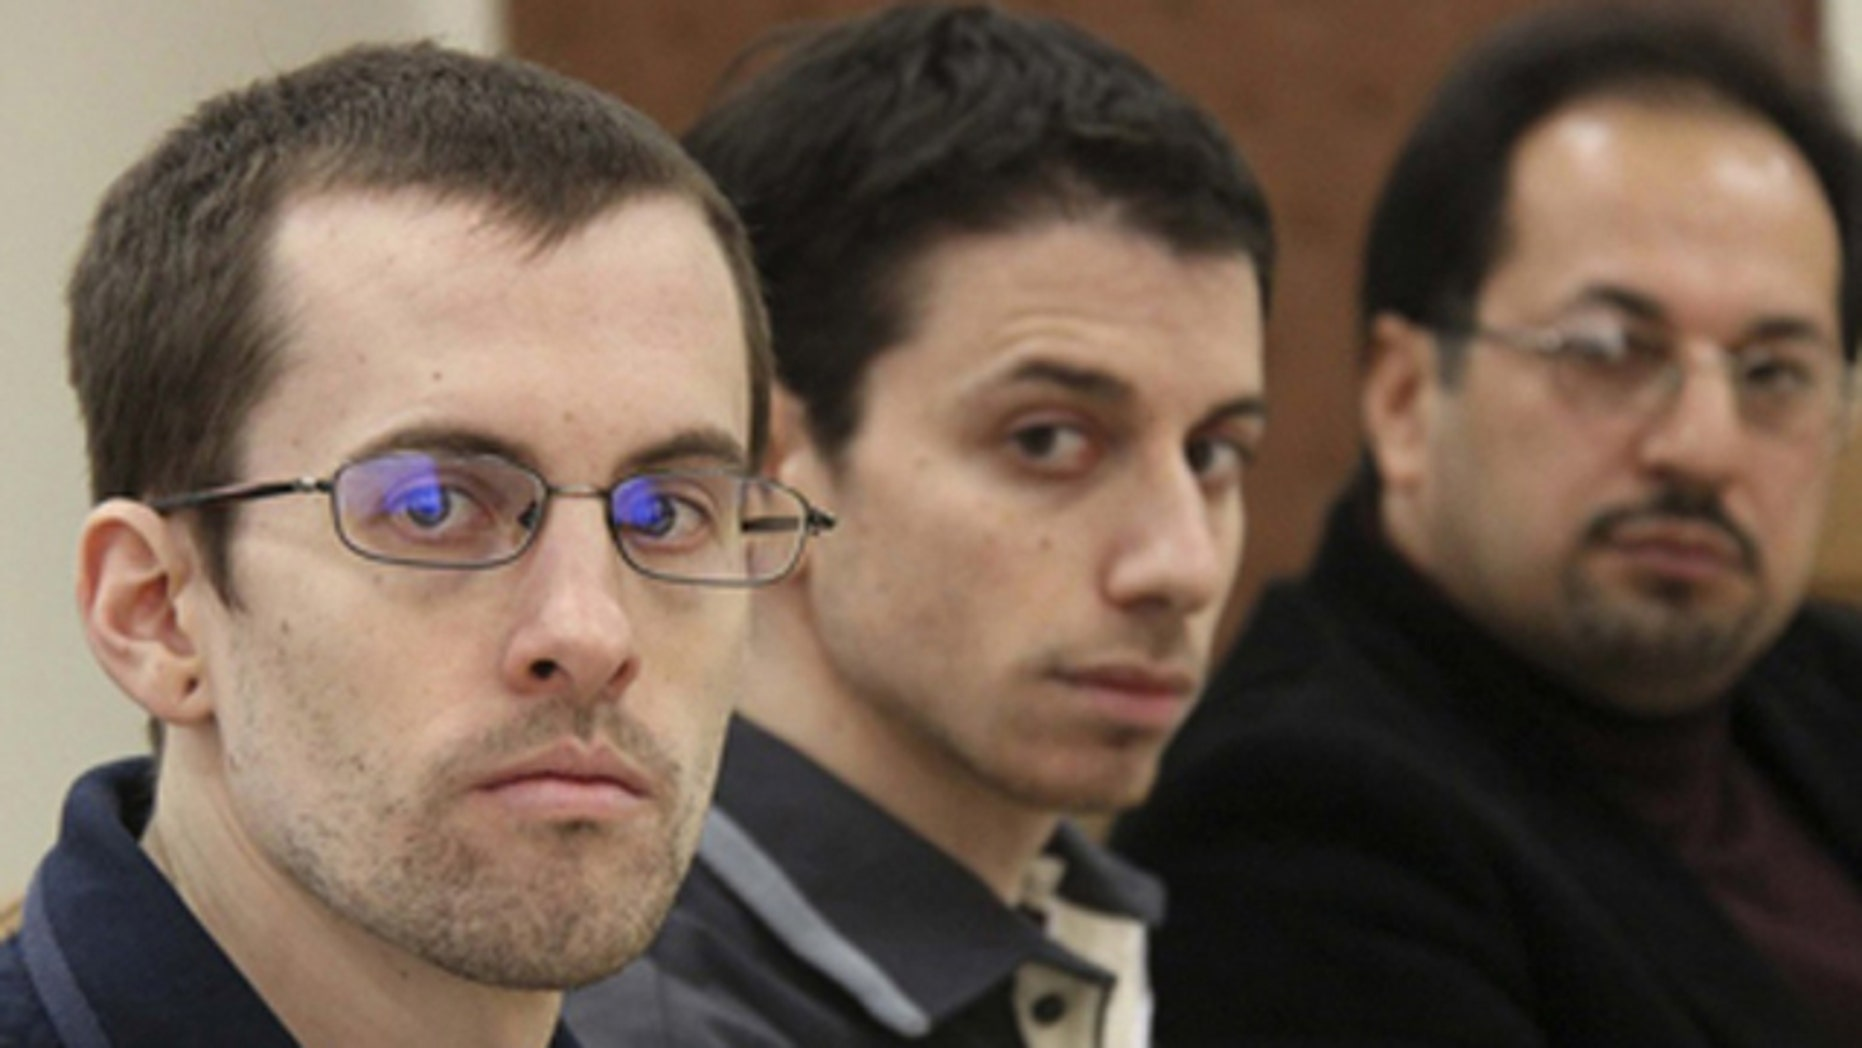 Feb. 6: American hikers Shane Bauer, left, and Josh Fattal, center, and their translator attend the first session of their trial at the revolutionary court in Tehran.